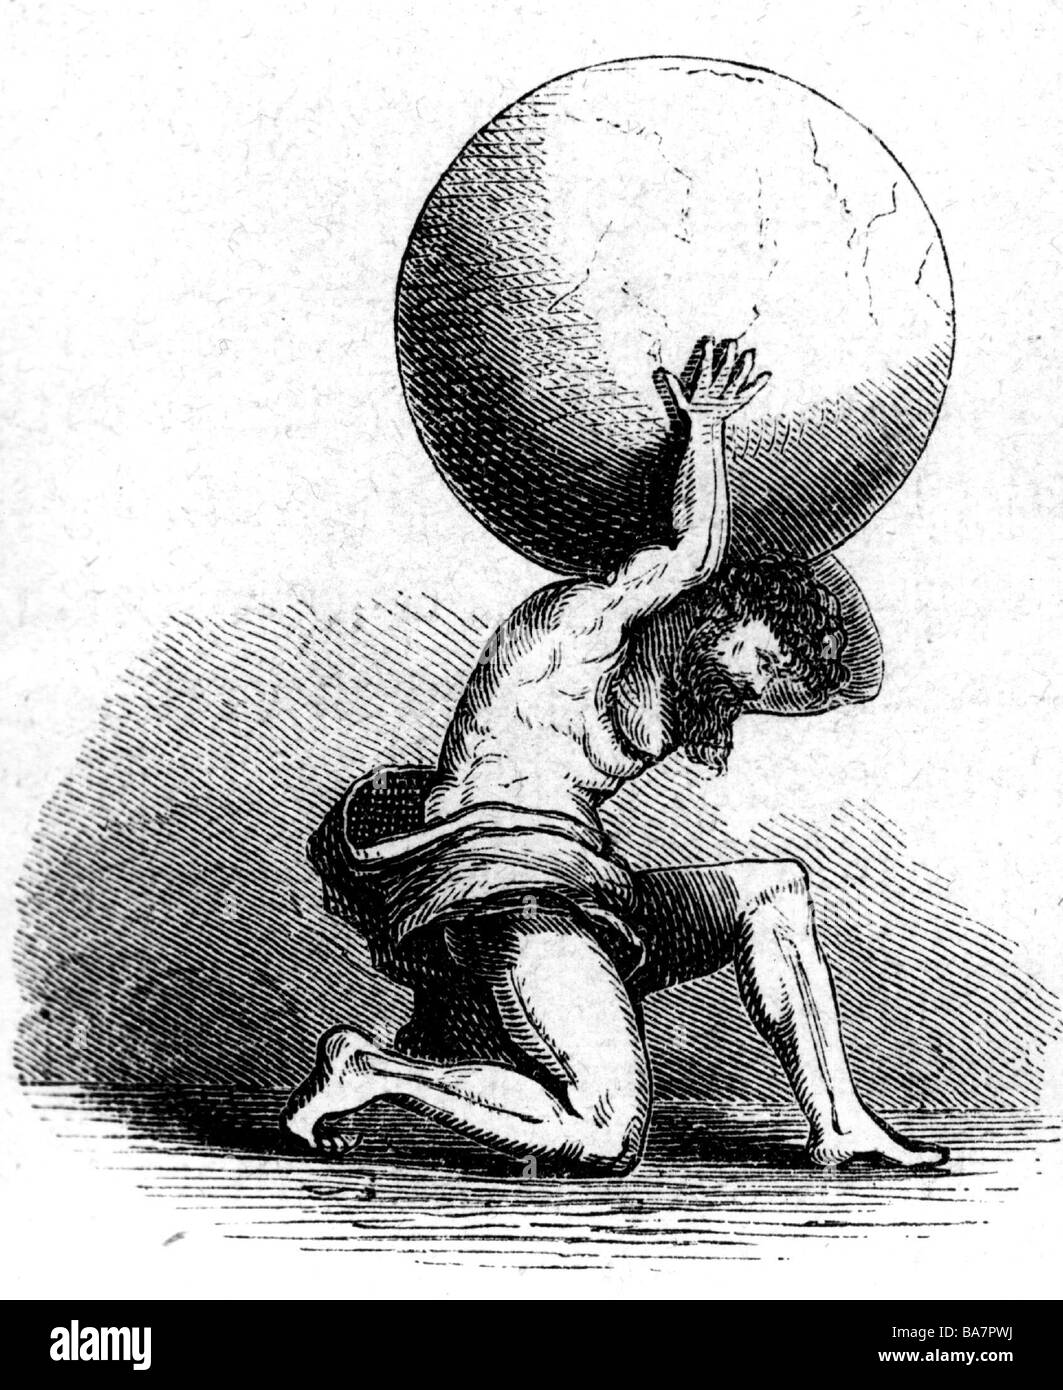 Atlas, Titan, Greek myth figure, carrying earth on his shoulders, wood engraving, 19th century, Additional-Rights - Stock Image